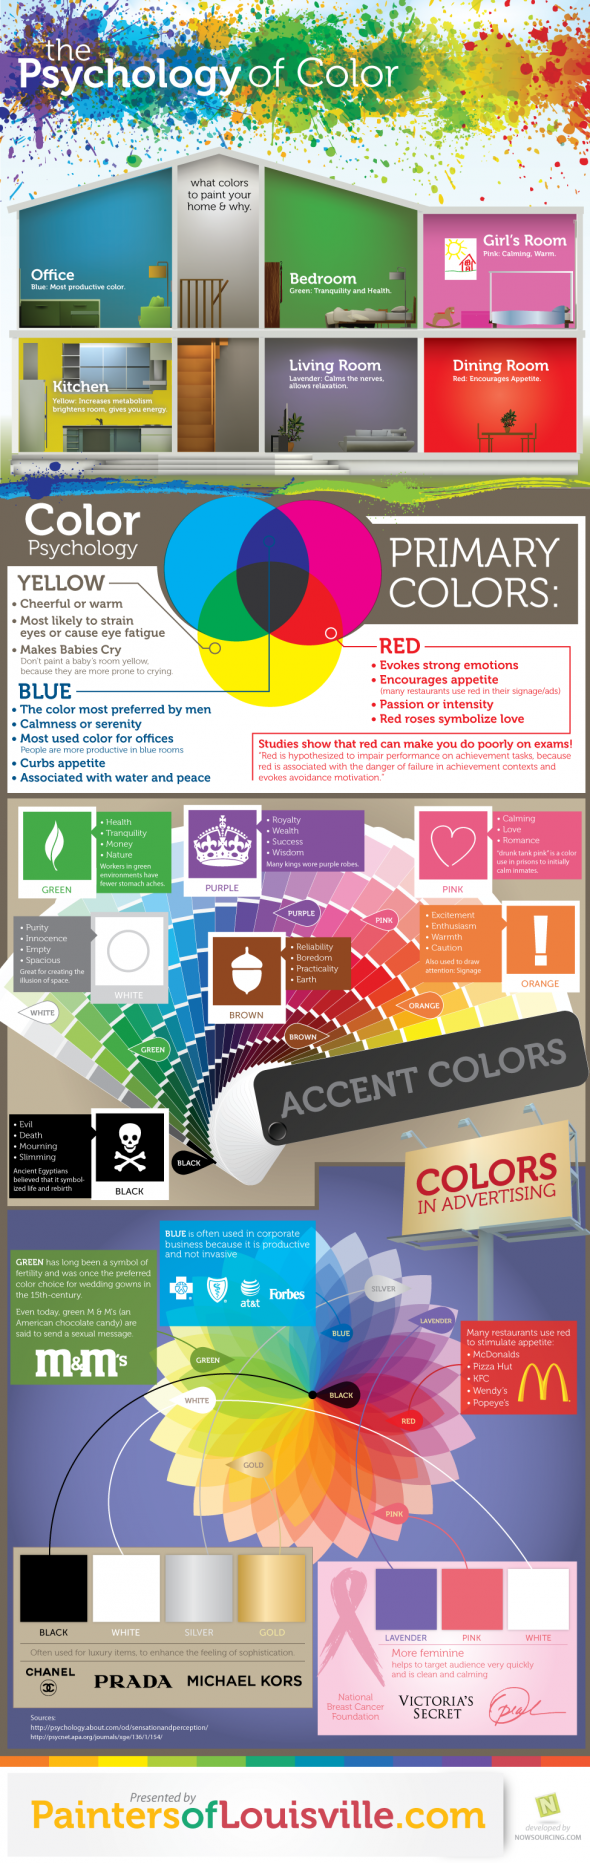 Game color theory - The Psychology Of Color Is Often Overlooked As An Influence In The Decisions We Make Every